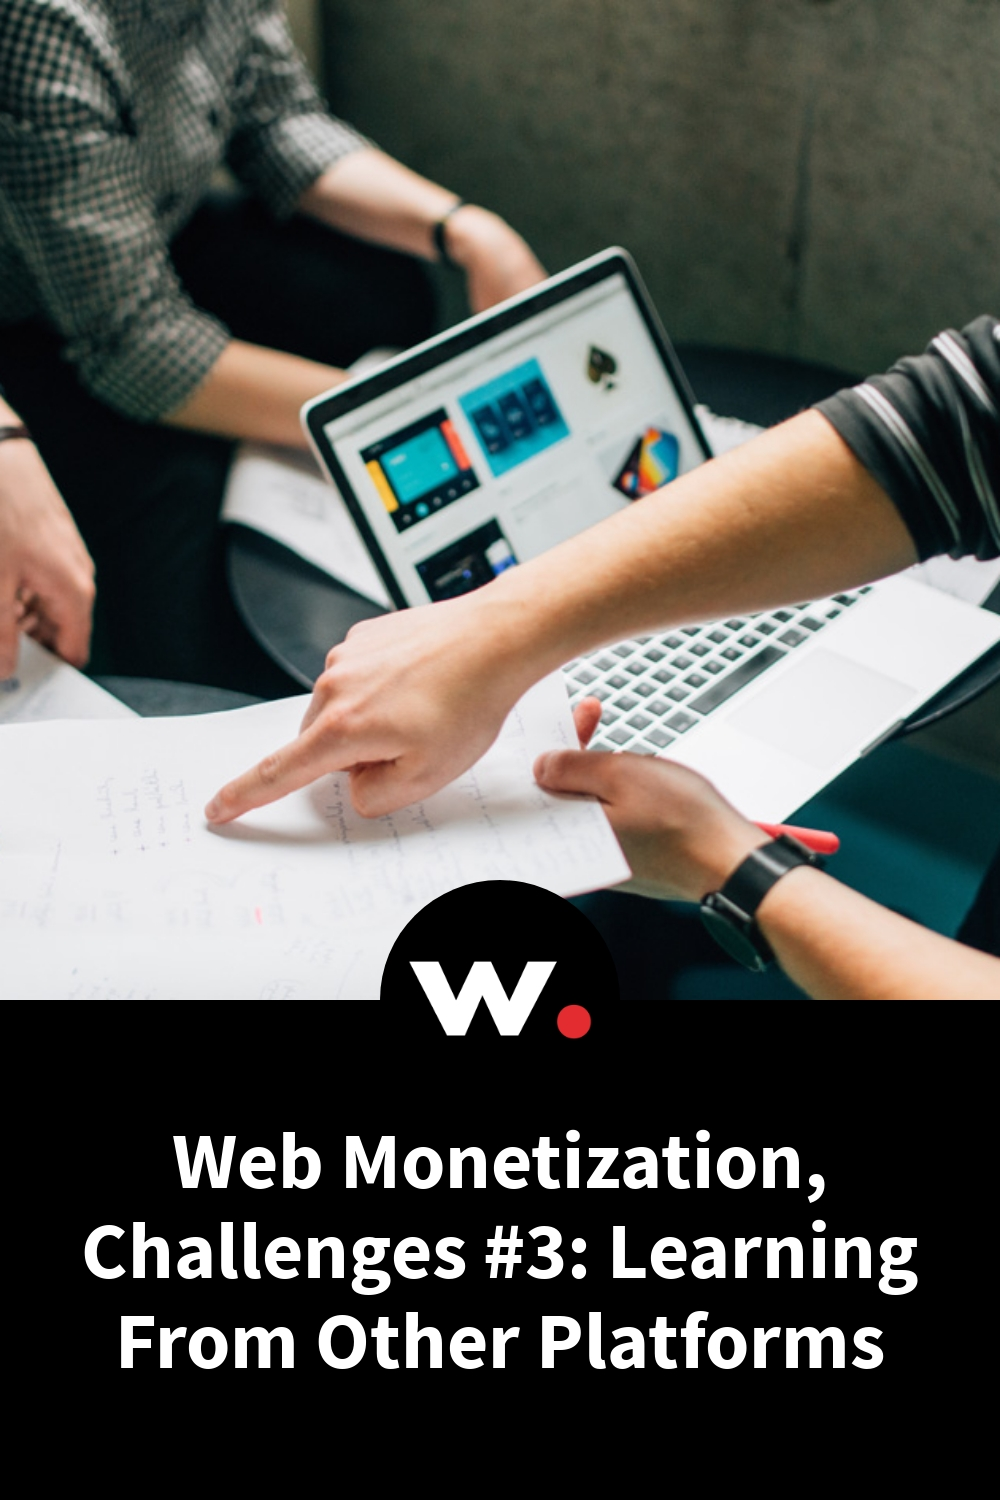 Web Monetization, Challenges #3: Learning From Other Platforms